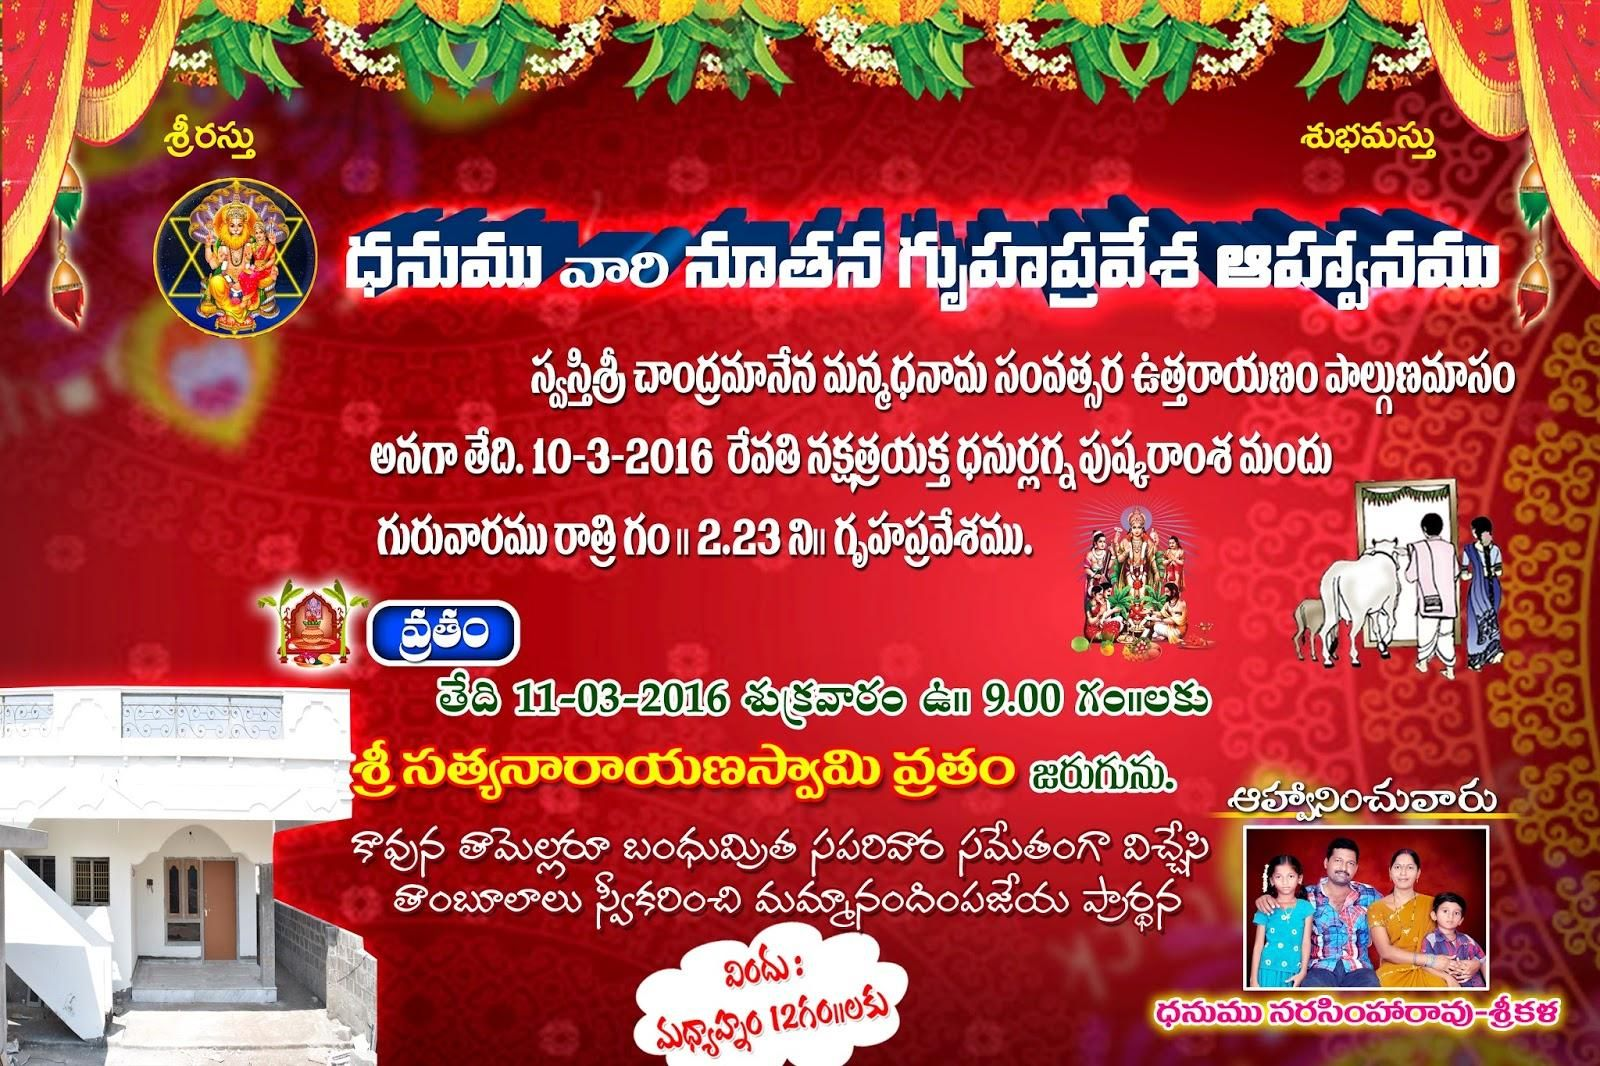 16 Housewarming Invitation Templates In Telugu Housewarming Invitation Templates House Warming Invitations Invitation Template